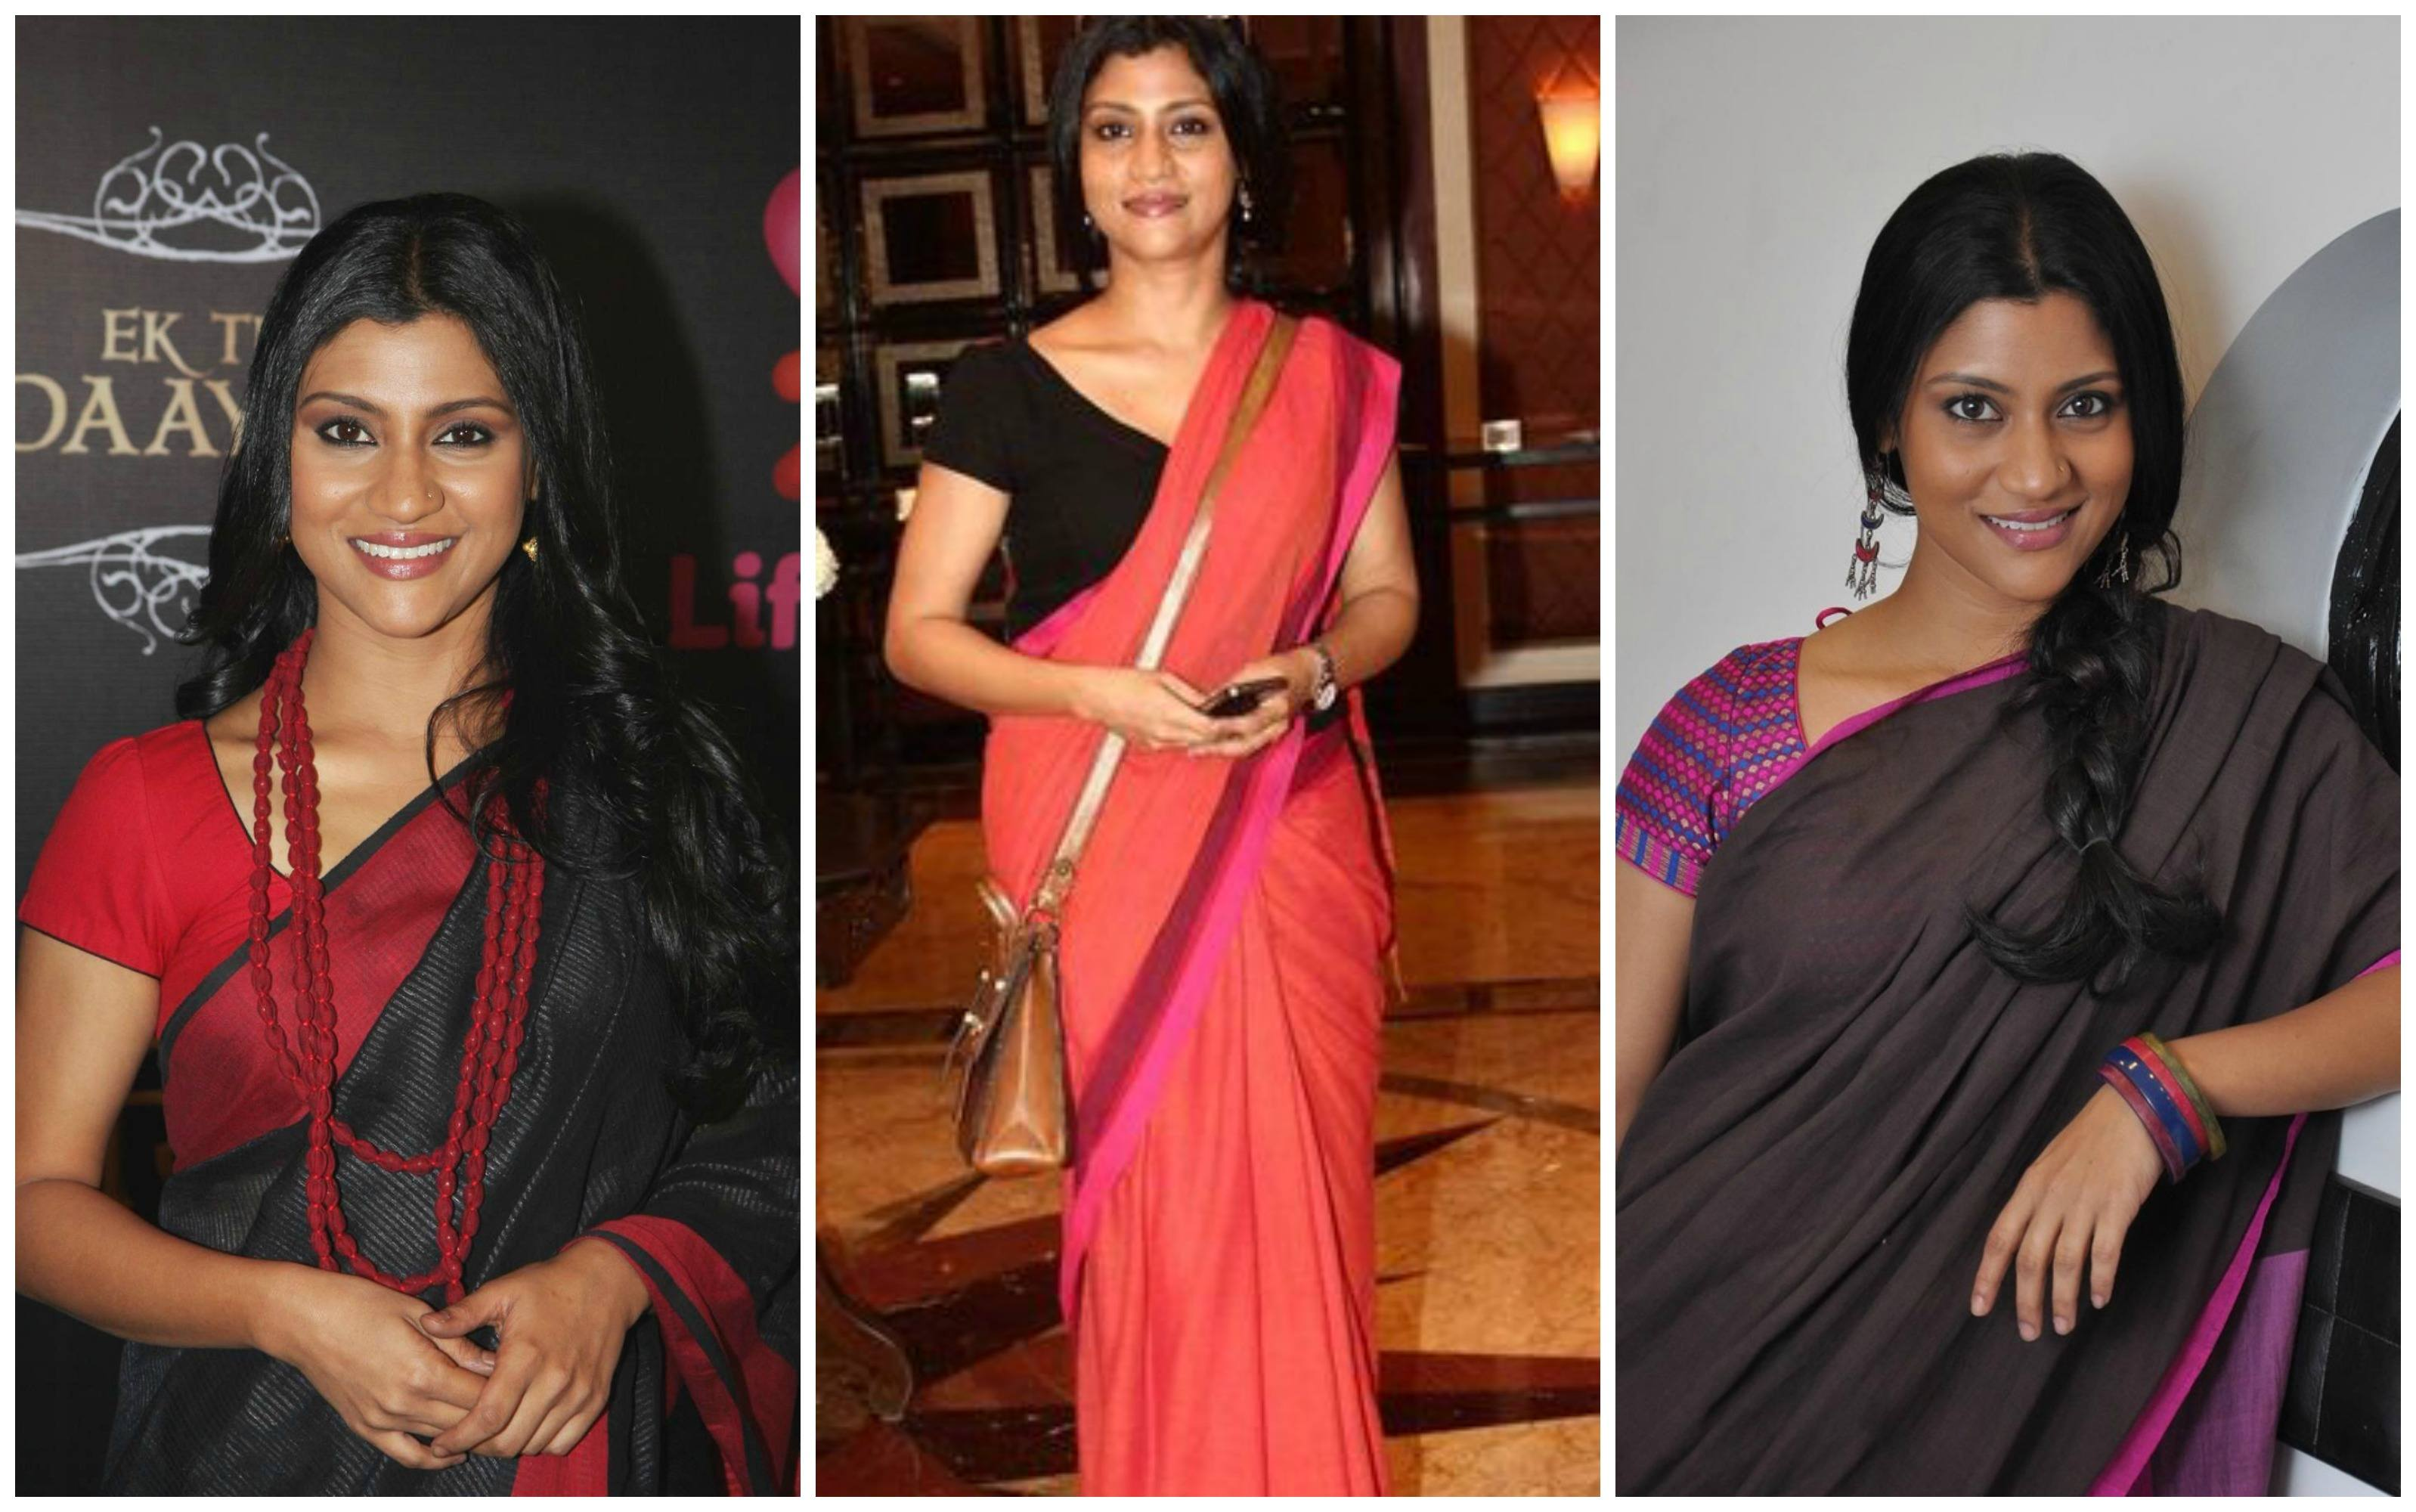 a98c0b0aac Instead, she opts for plain sarees or ones with simplest borders.  RECOMMENDED: How to Wear Saree Tutorial-Step By Step Guide to Drape Saree